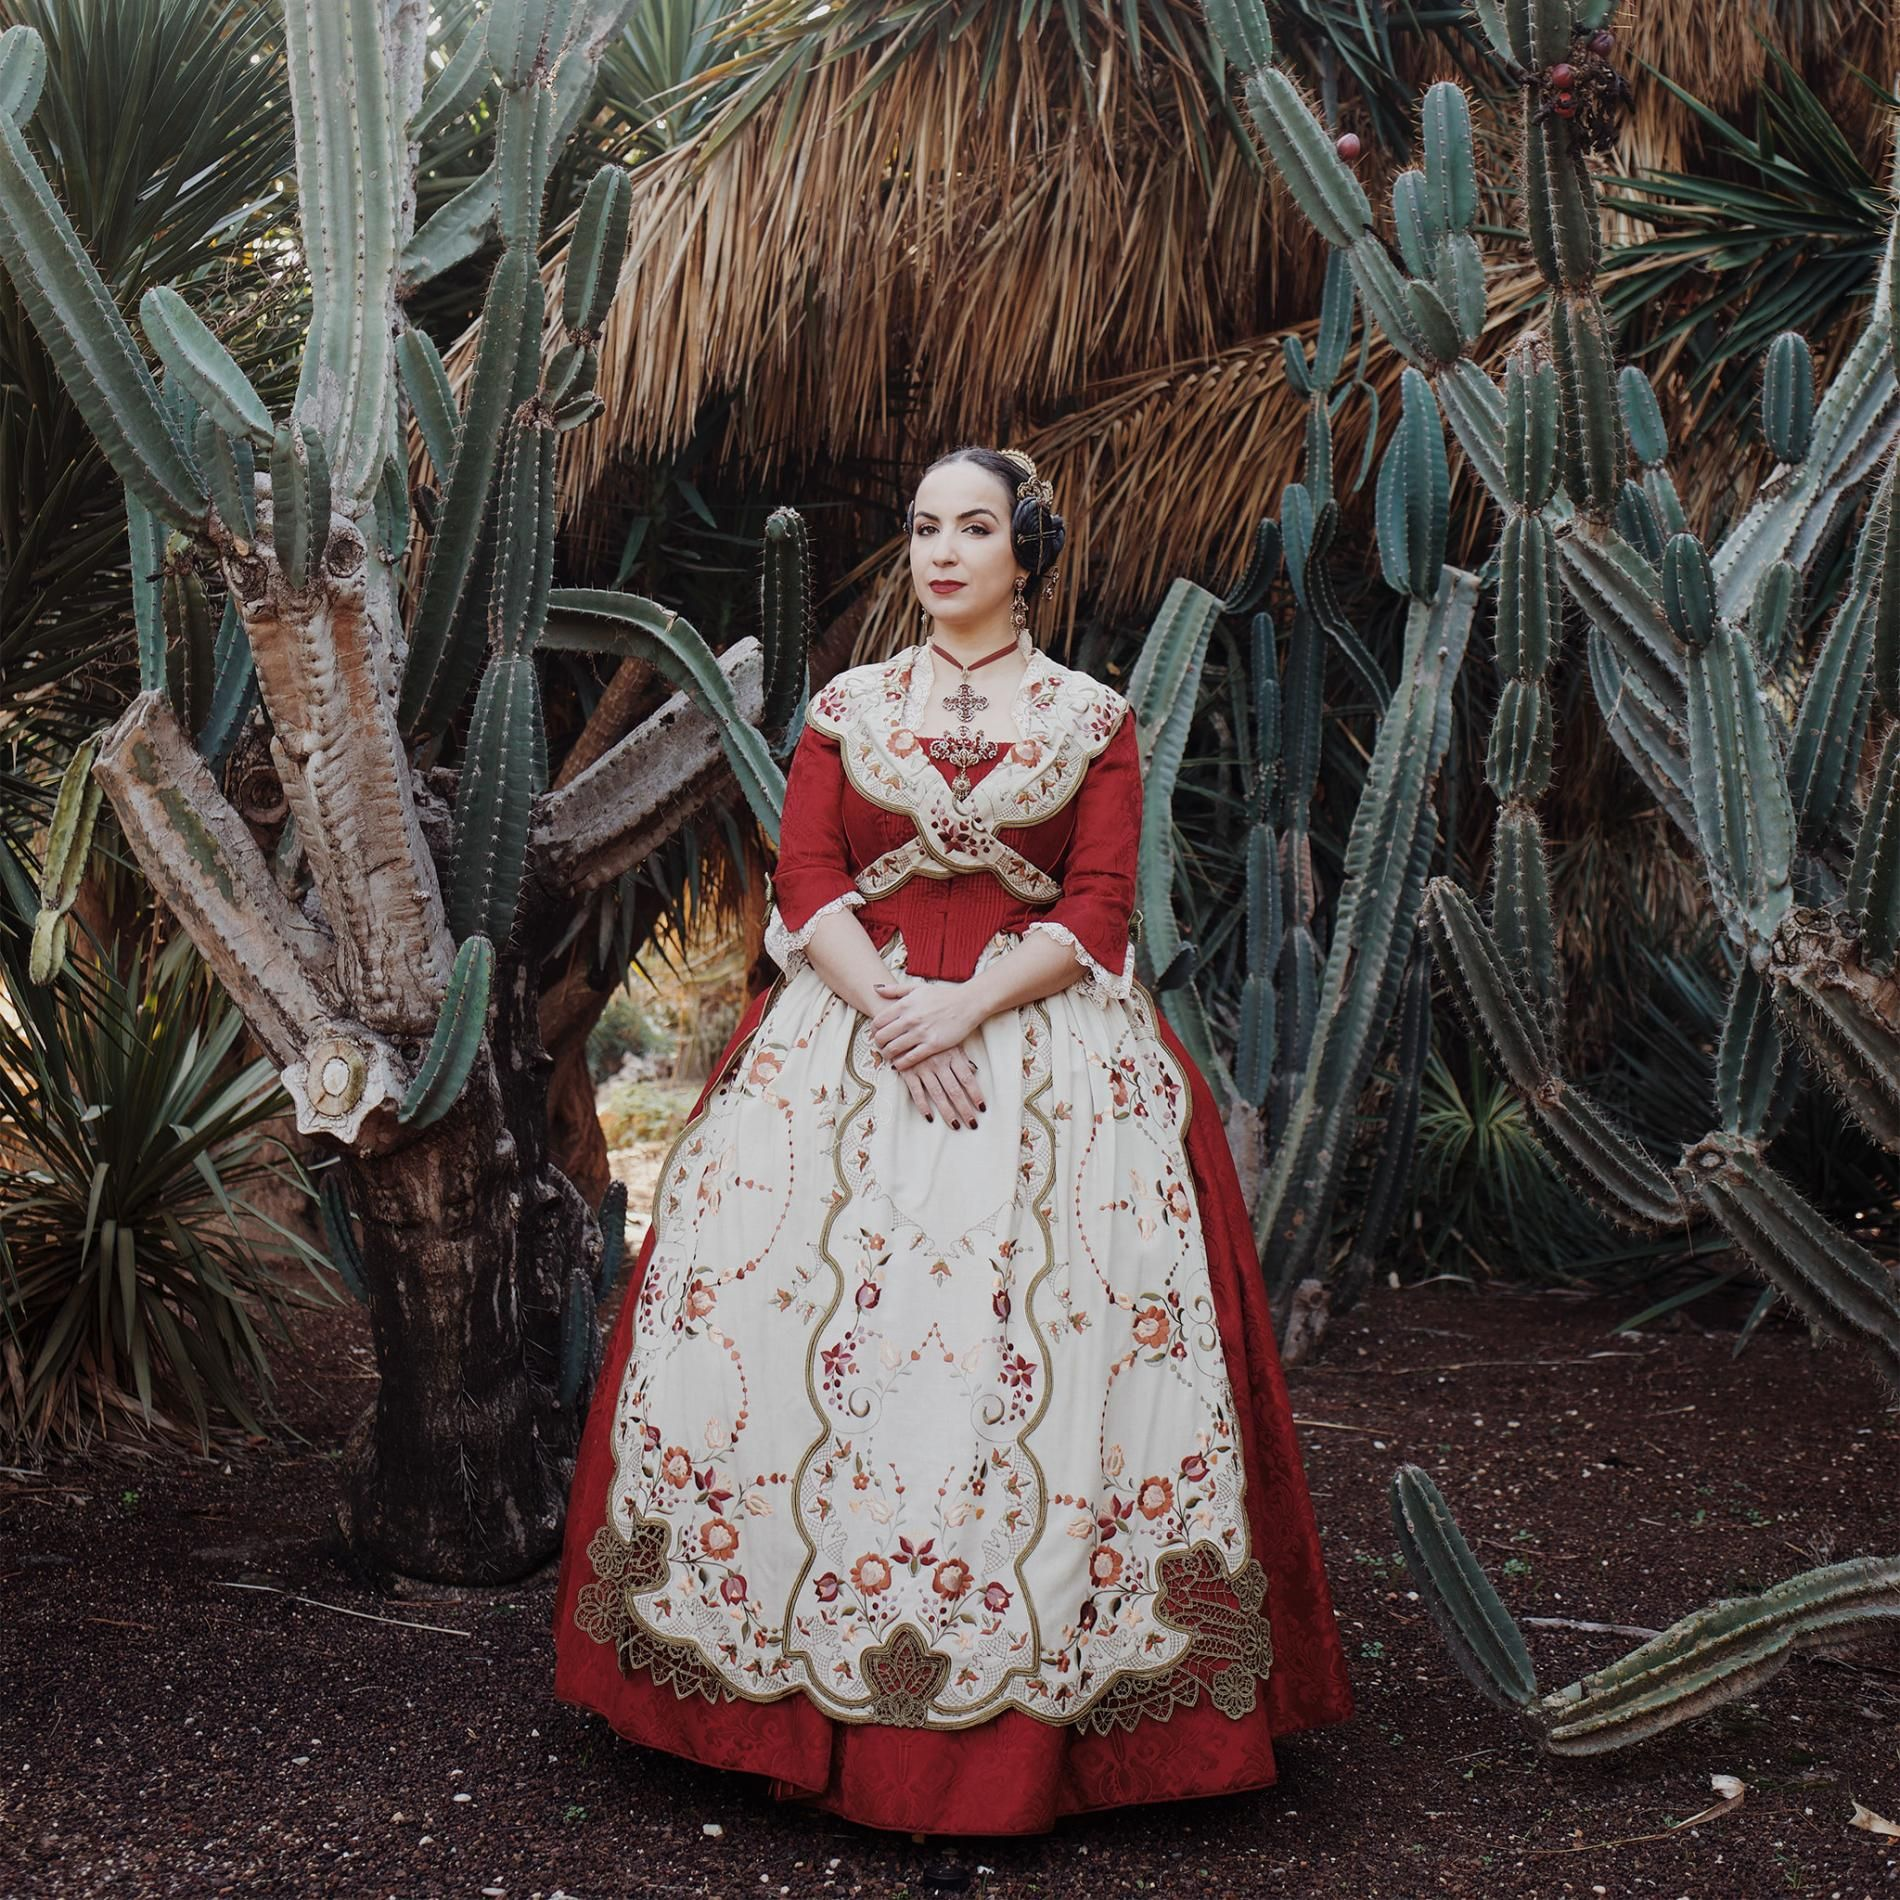 Spain's Falleras Bring Historic Opulence to Life em 2020